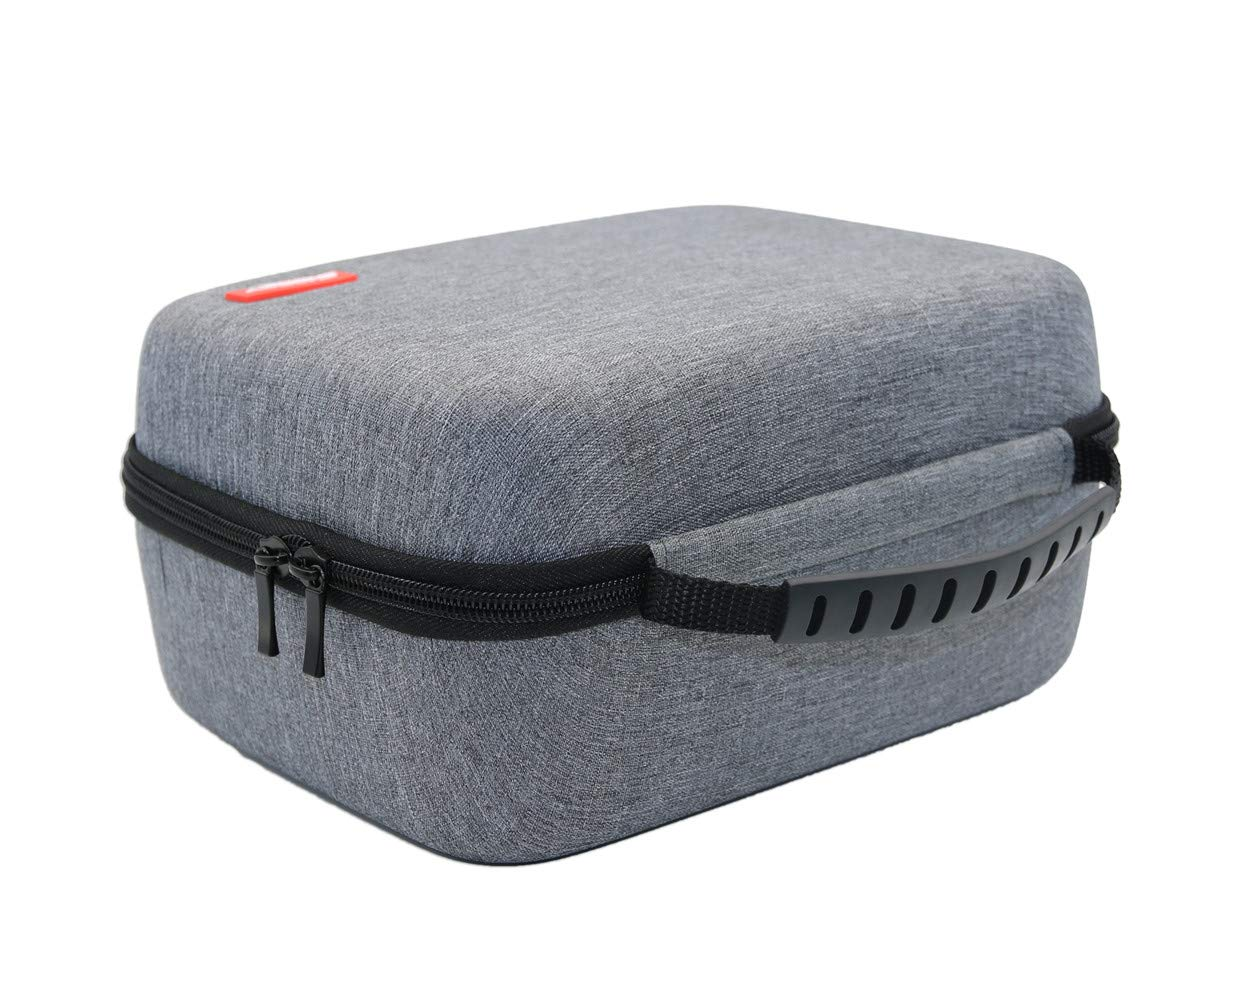 32G//64G Black fits Controllers and Accessories Hard Travel Storage Bag Carrying Case for Oculus Go Standalone Virtual Reality Headset for Oculus Go Case